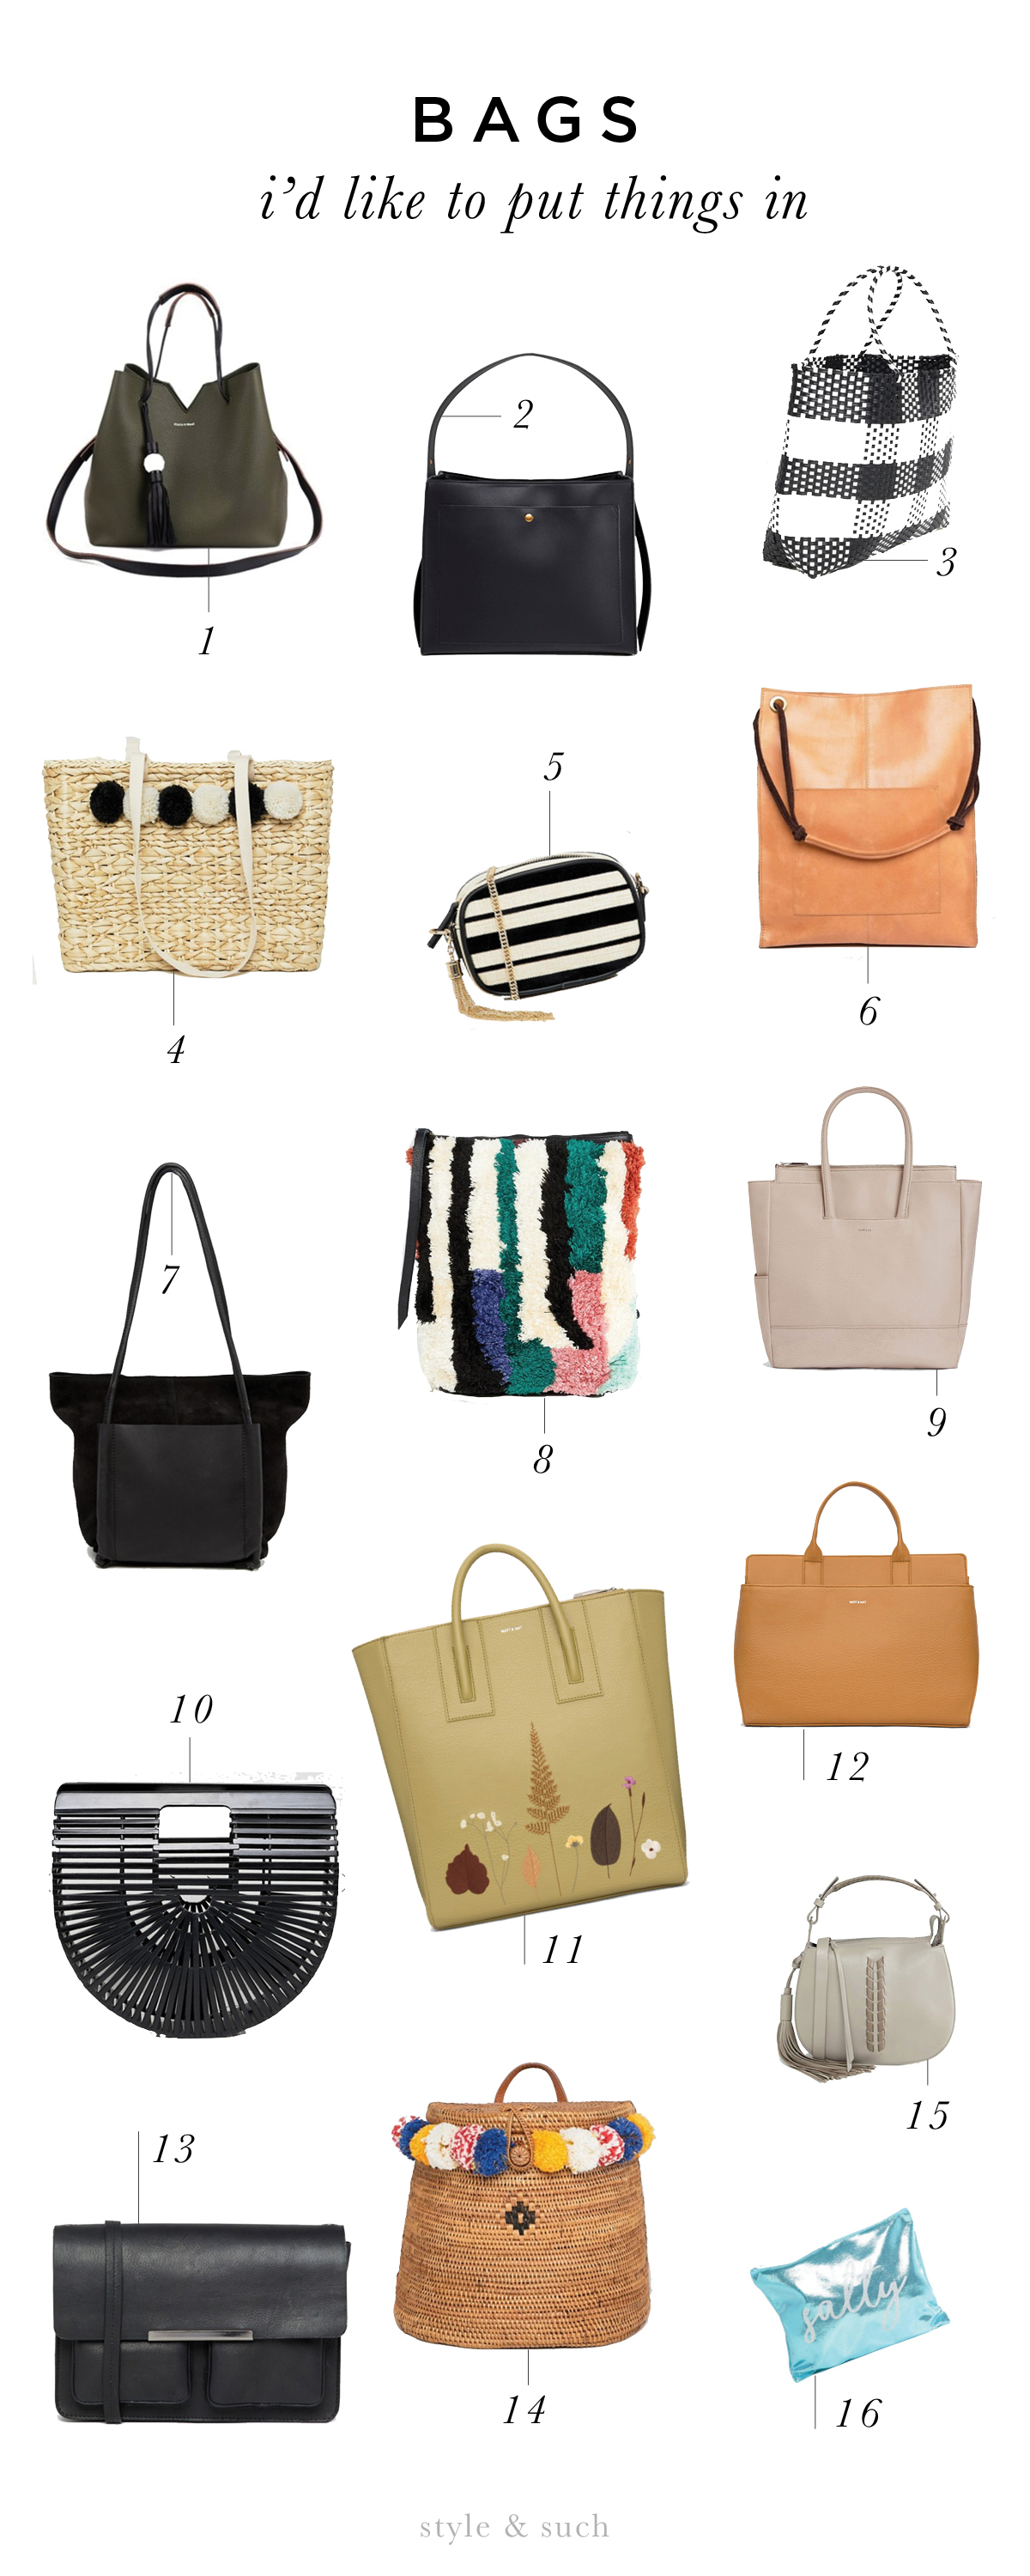 bags i'd like to put things in.jpg